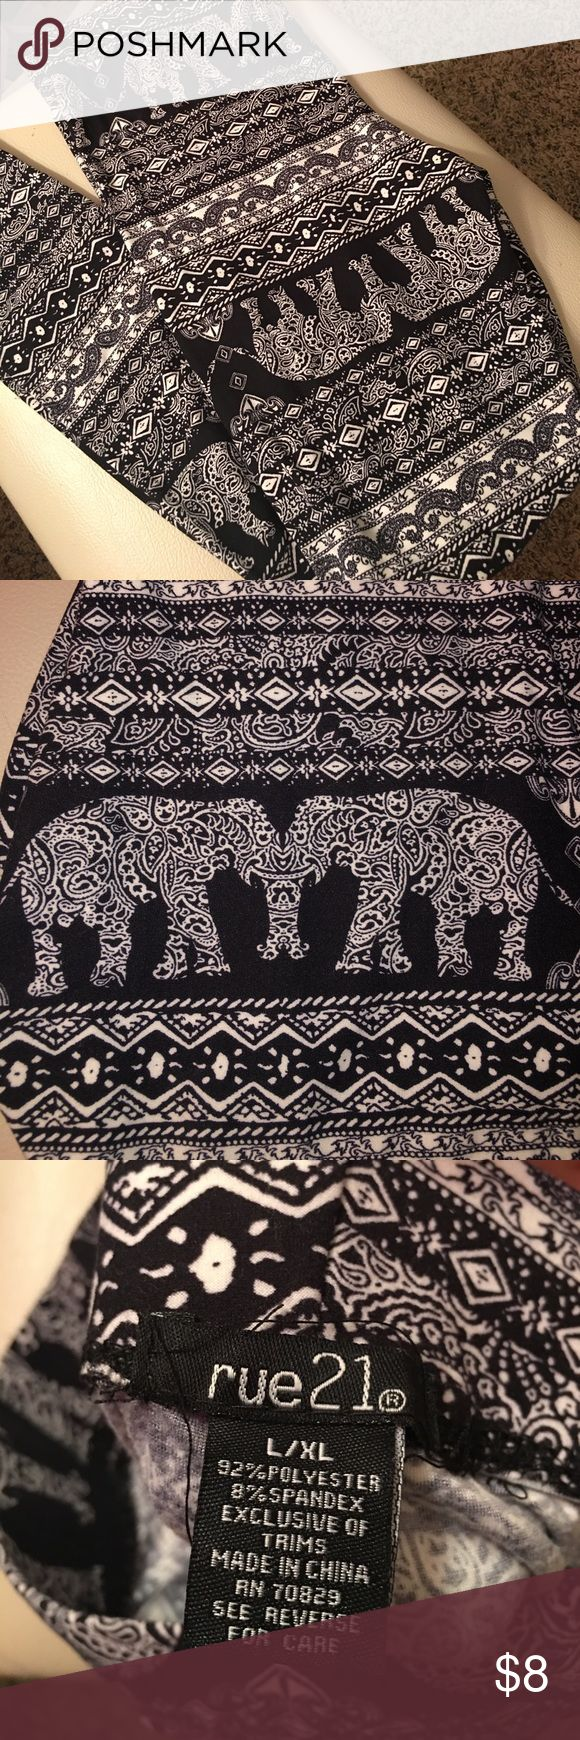 Elephant tribal print leggings NWOT. Tried on once, never been washed. Too small for me. Soft material. Rue 21 Pants Leggings